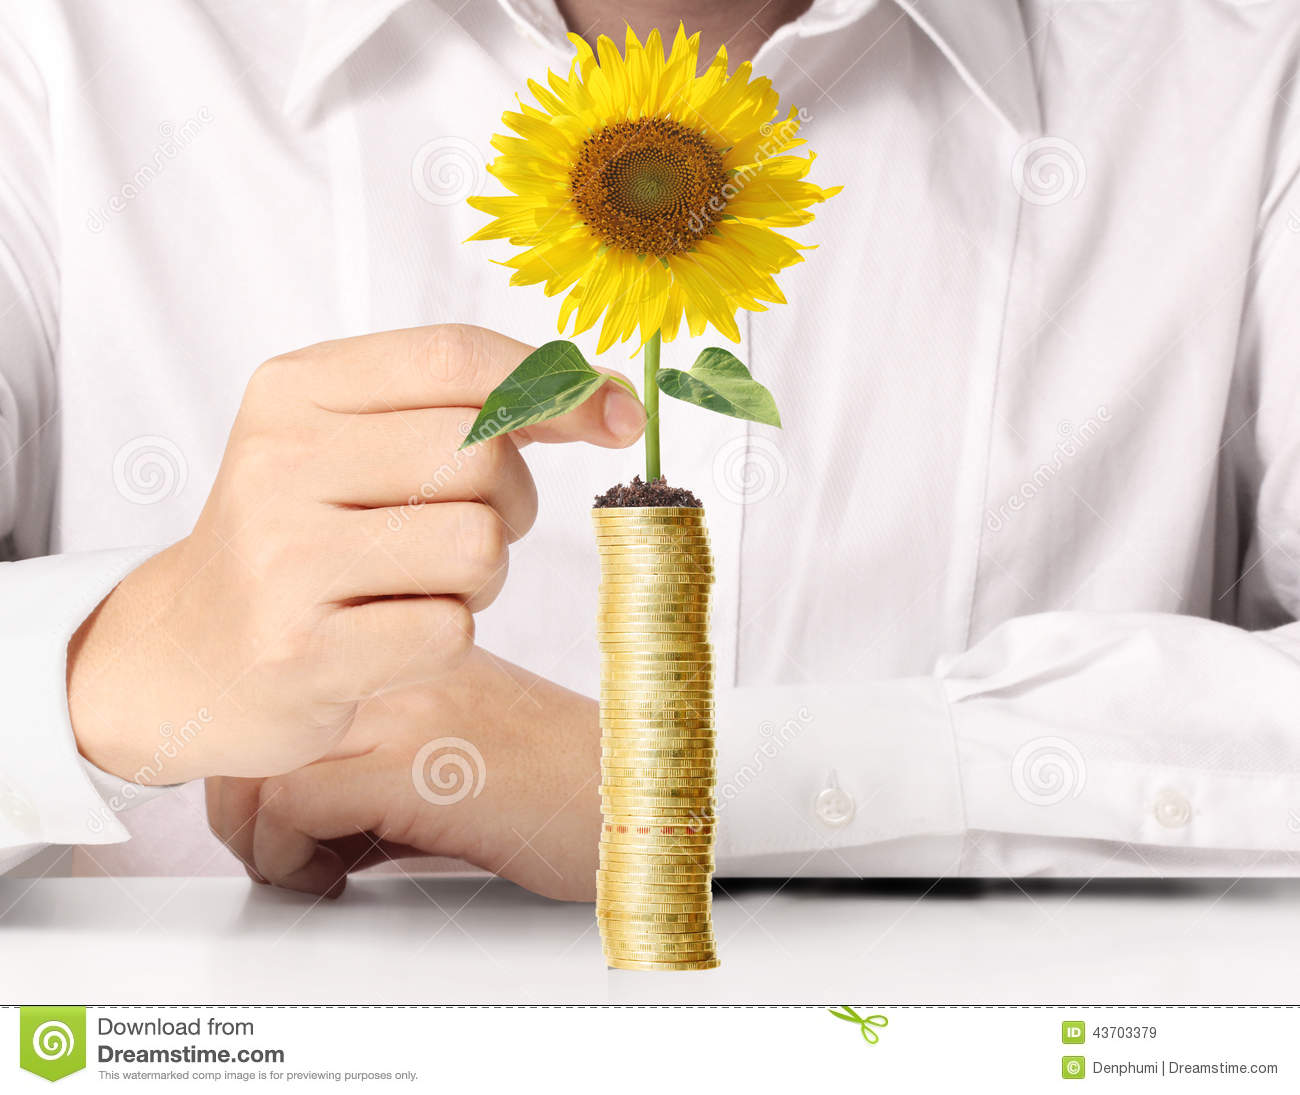 hand-holding-tree-growing-golden-coins-saving-money-43703379